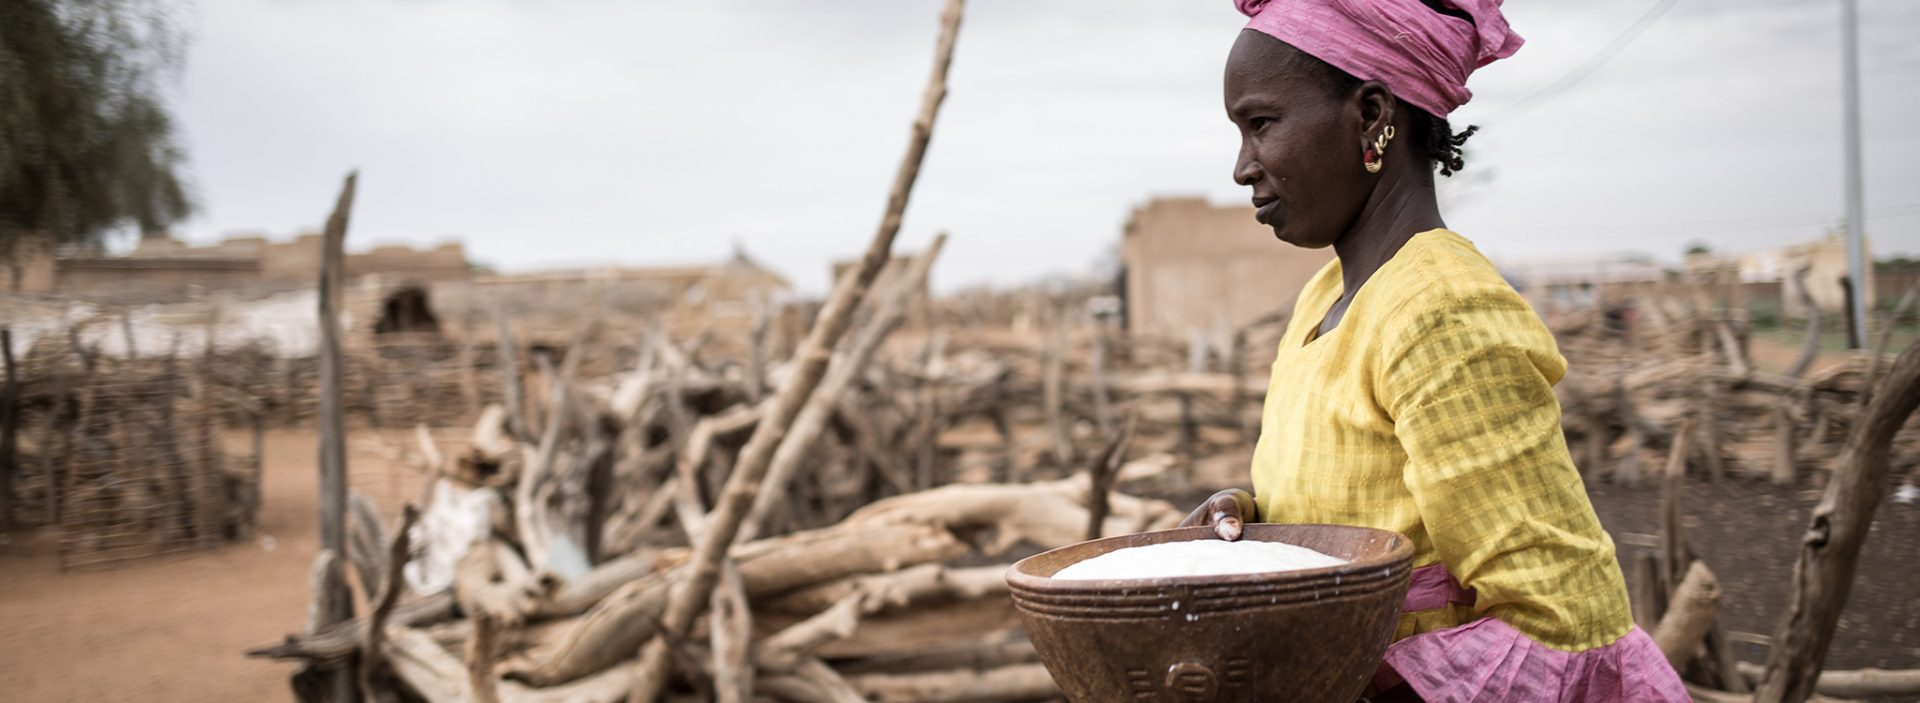 A woman carries a bowl of milk at an Action Against Hunger project in Senegal.